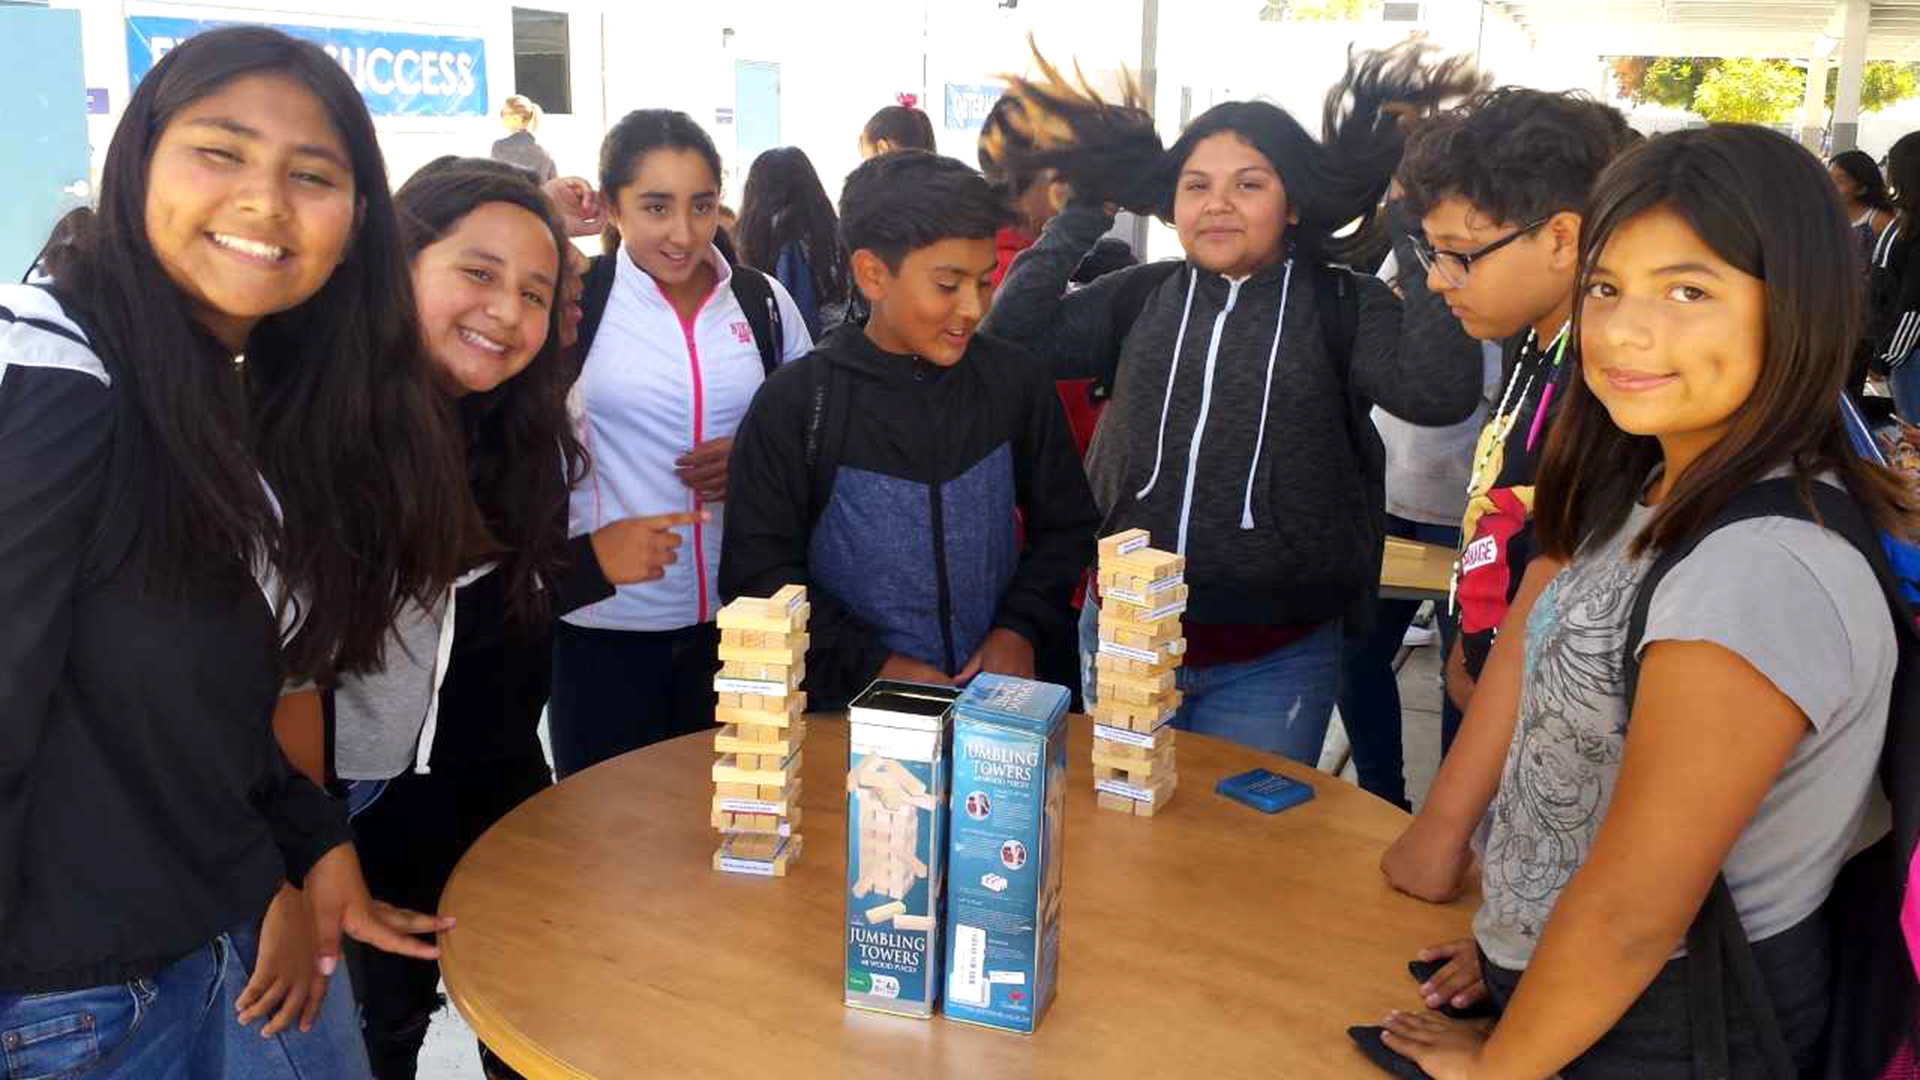 """Students play Jenga during their lunch for our counselor's support of the """"Sandy Hook Promise: Start with Hello Week"""" to promote connectedness and inclusion within Fillmore Middle School."""